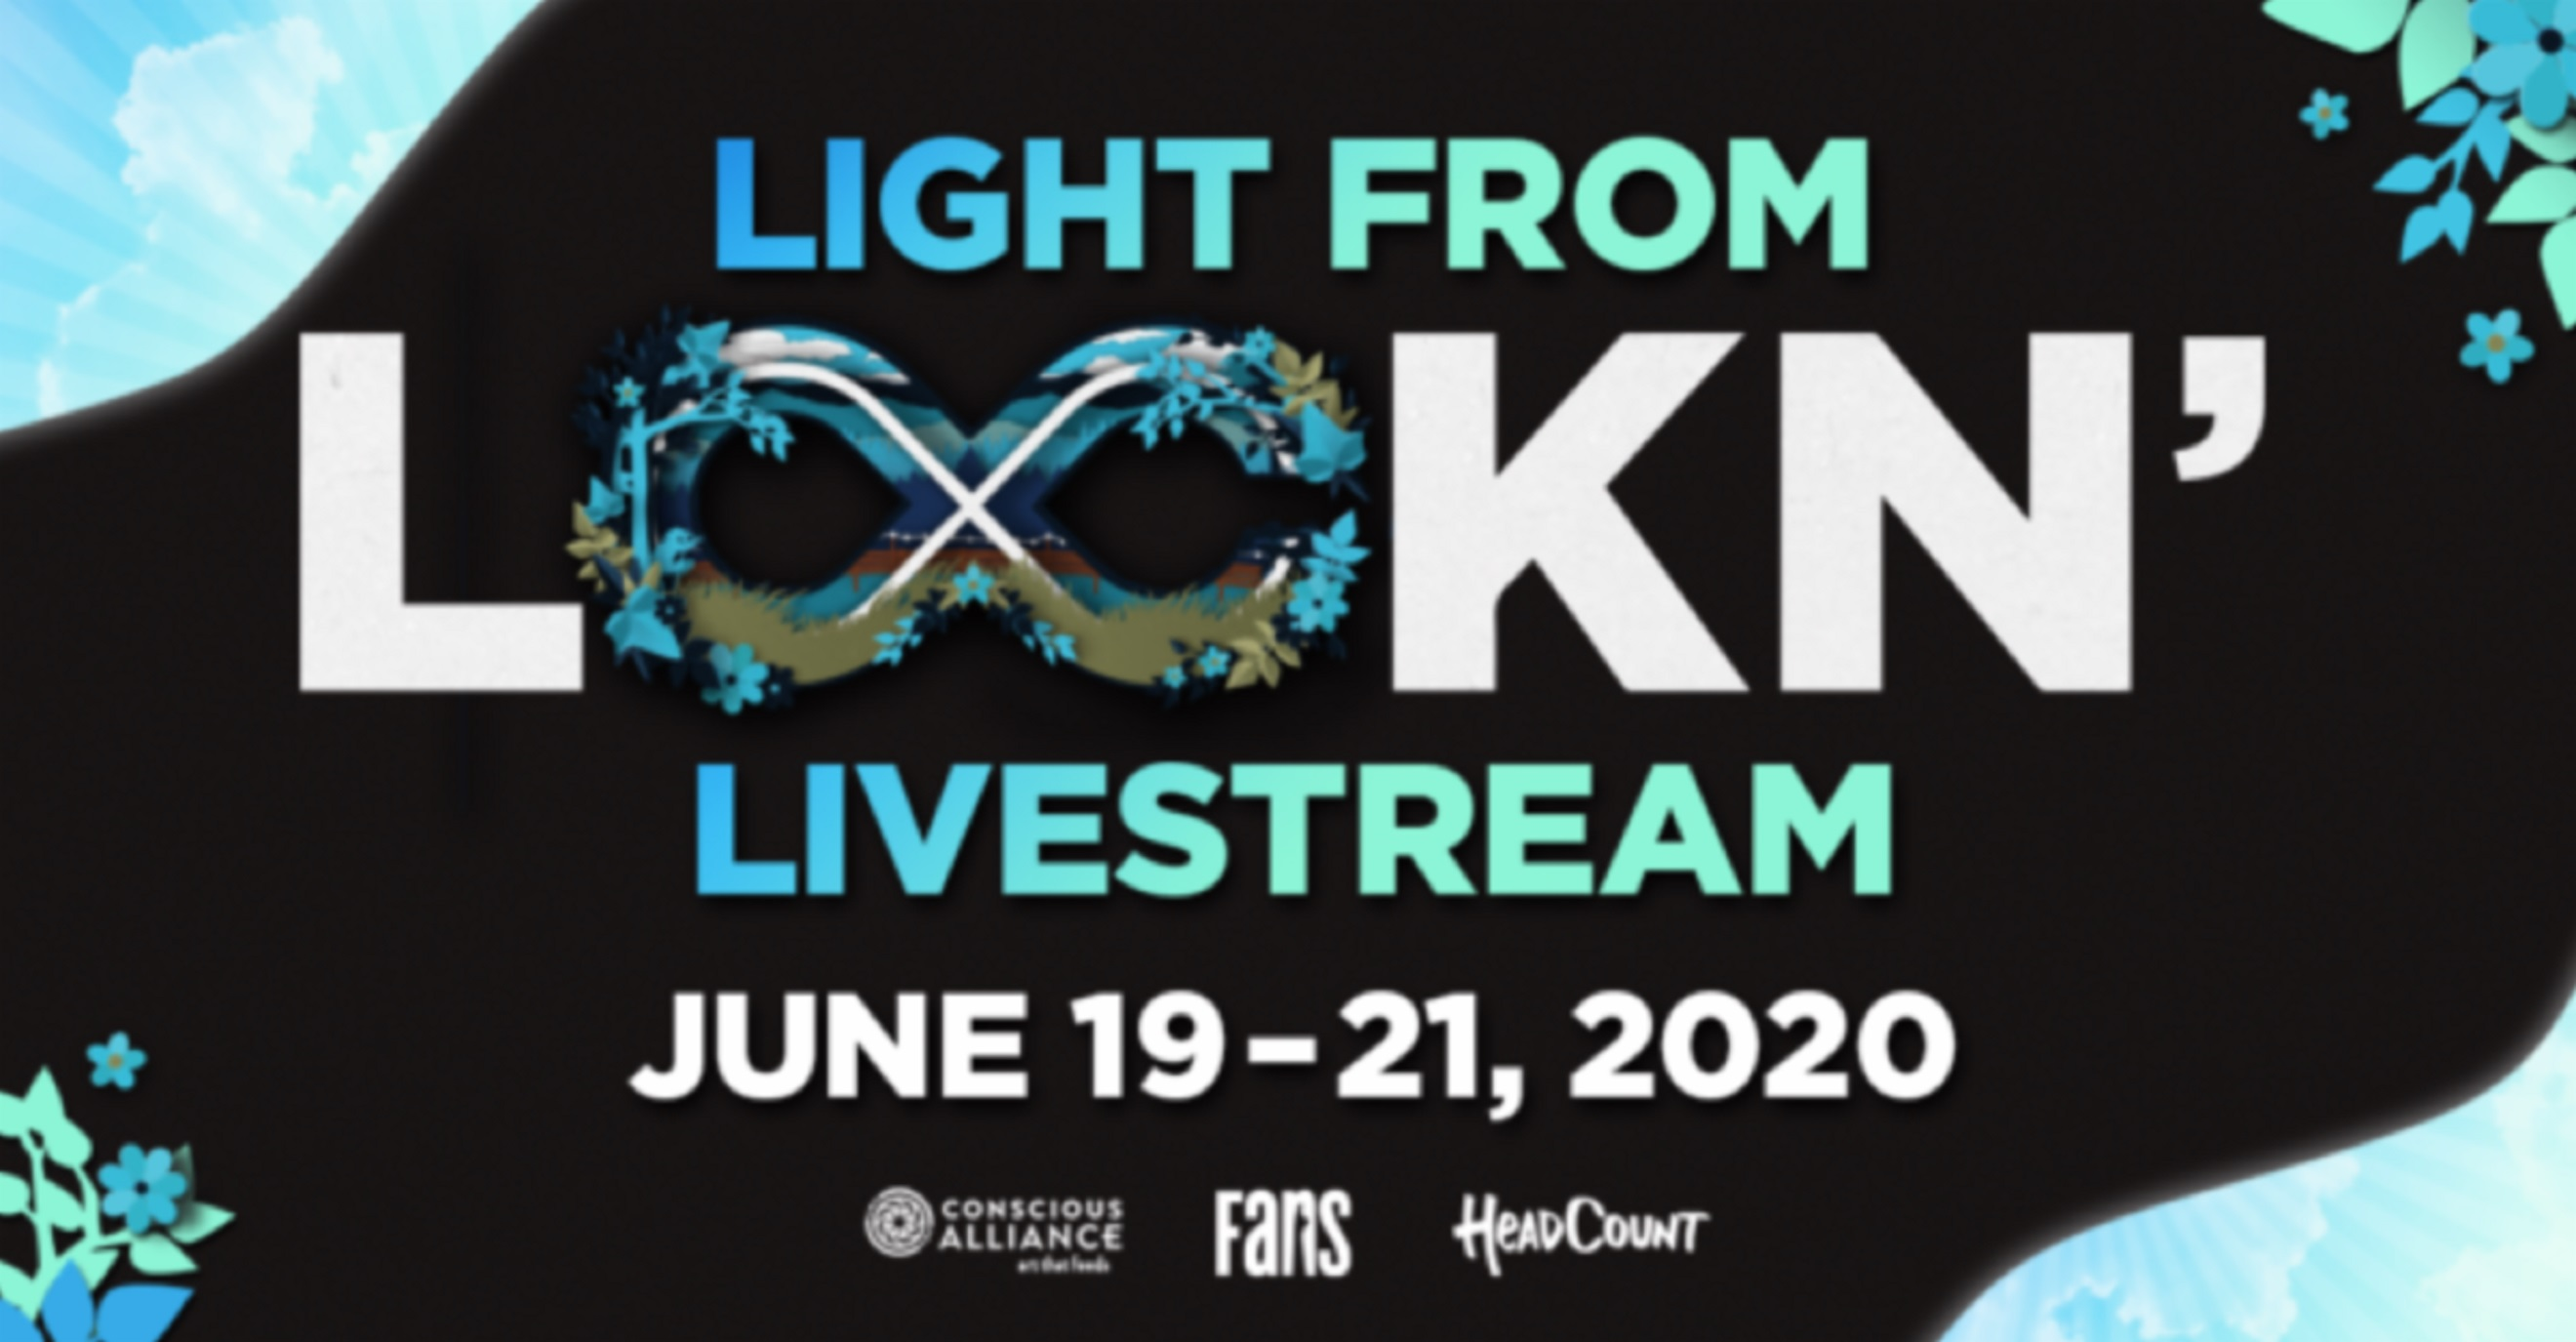 Lockn' unveils livestream lineup for this weekend